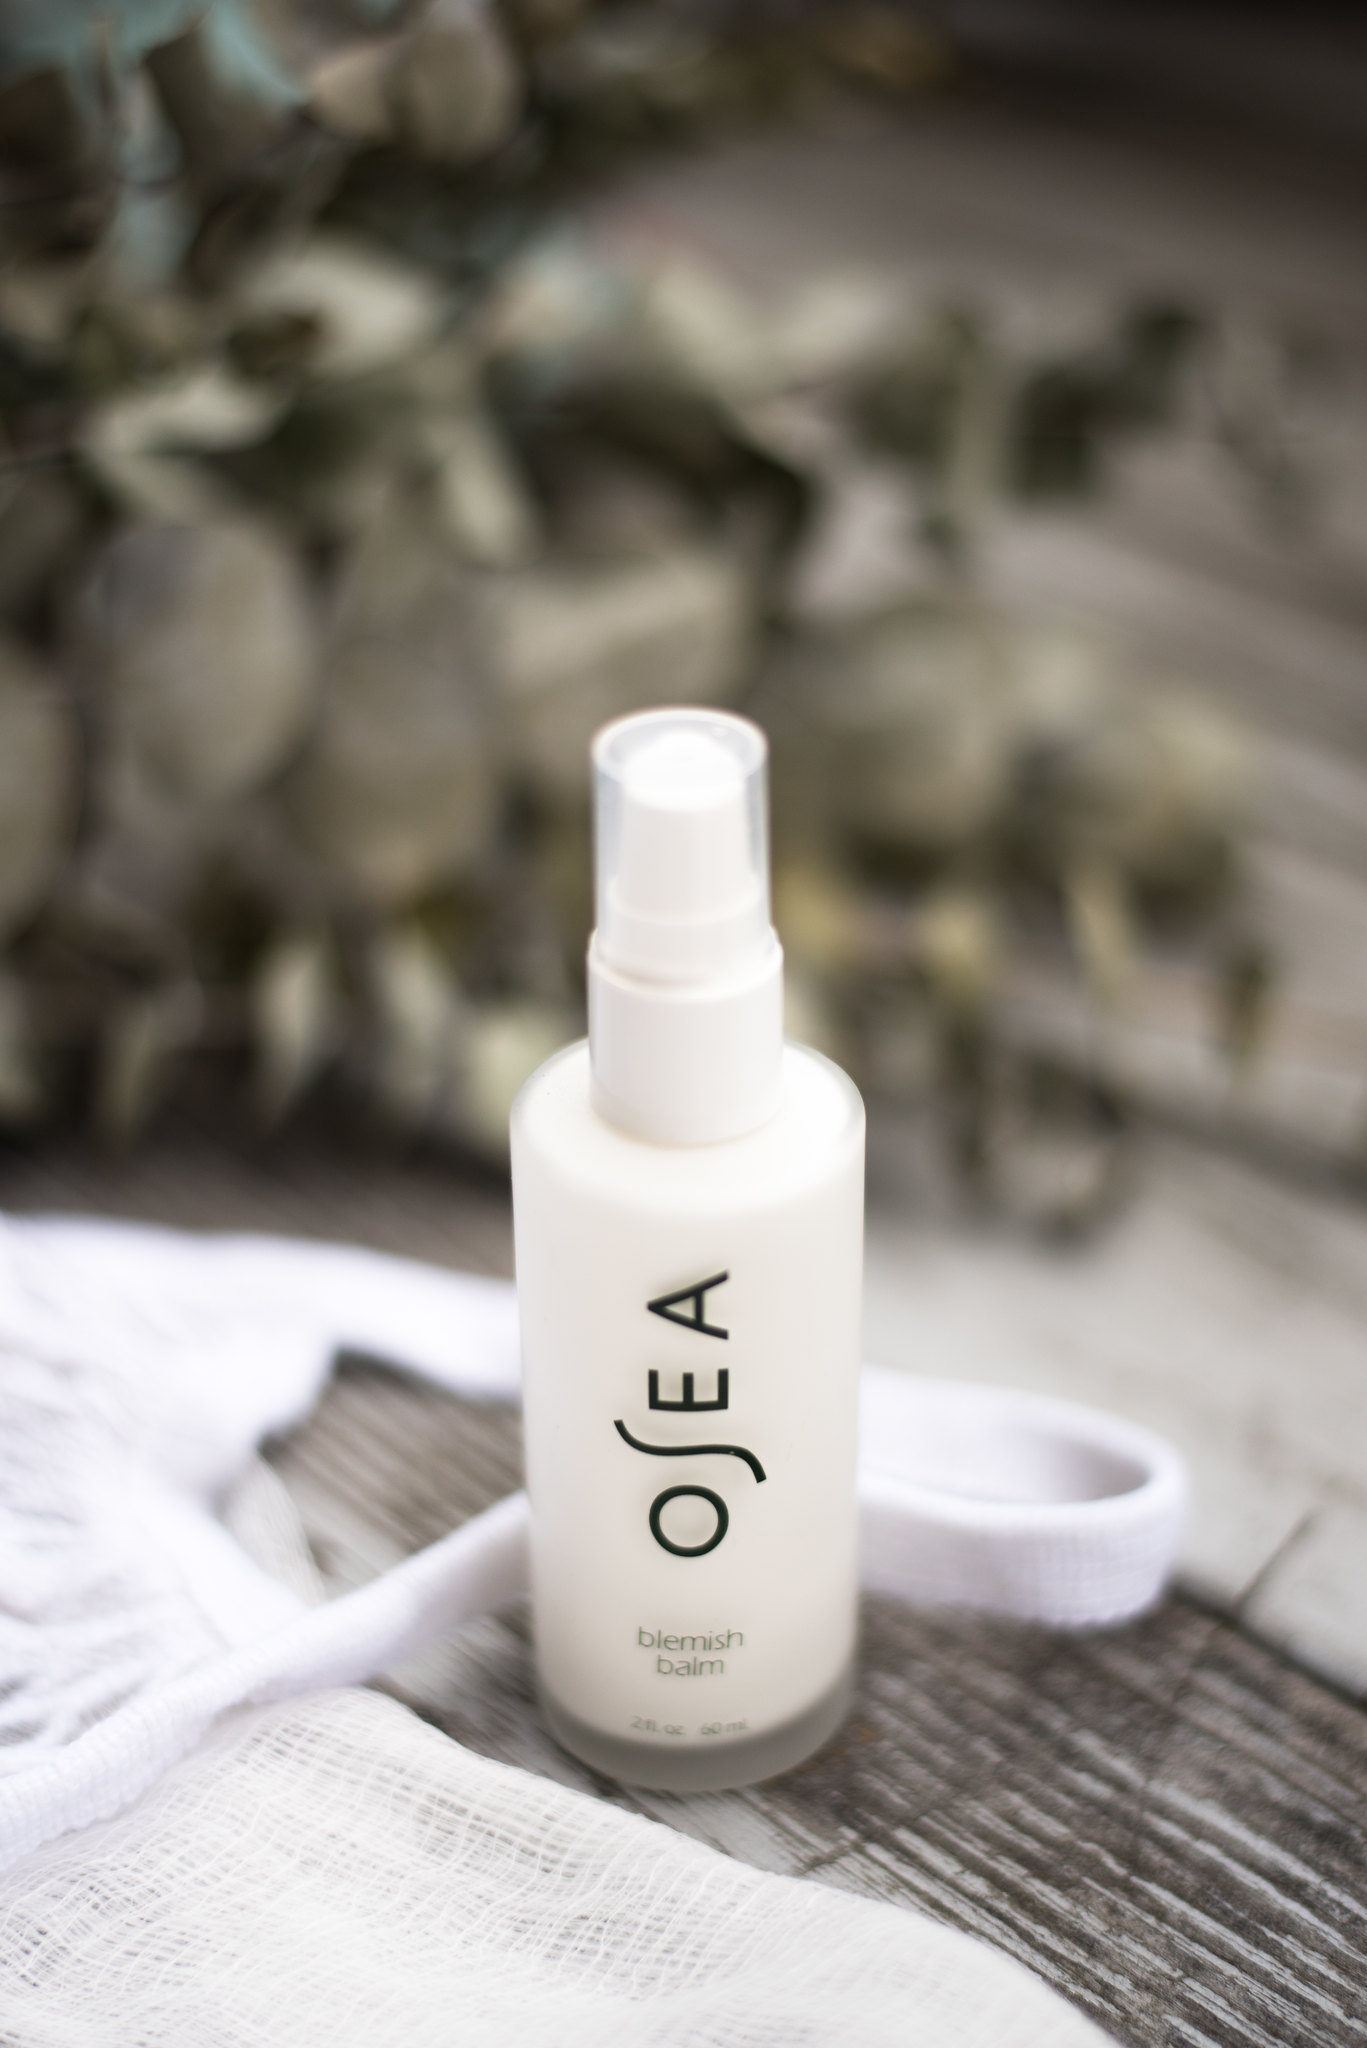 Osea Malibu Clean Skincare Review on juliettelaura.blogspot.com